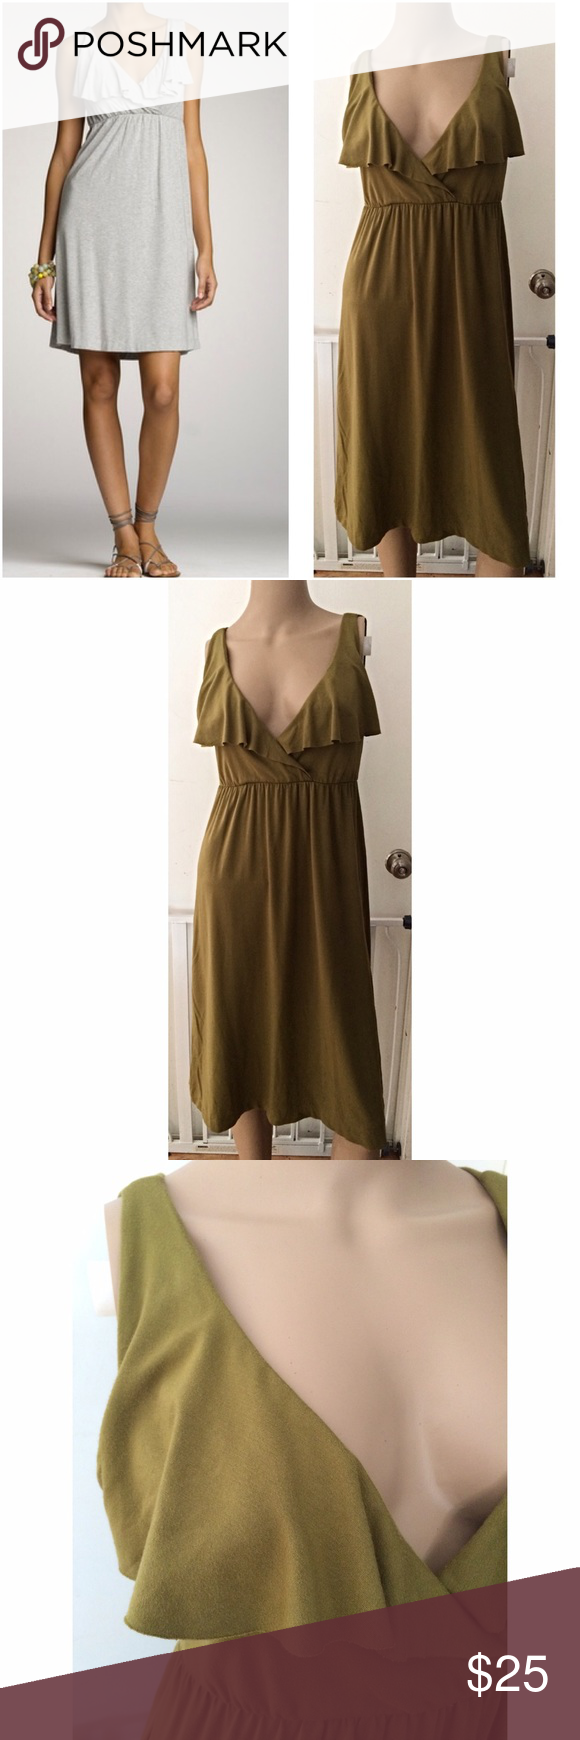 "EUC J. Crew Olive Green Ruffle Neck Dress In great pre-loved condition dress from J. Crew in size x-small, but probably can fit a small too. Has lots of stretch to the dress. In a soft jersey like fabric, in a olive green color. Measure about 37"" length,12"" waist not stretch out, 17.5"" pit to pit. ❌Sorry no modeling or trades. Model pic is same style, but different color. For sale is he GREEN color. Offers welcome. Thank you‼️ J. Crew Dresses Mini"